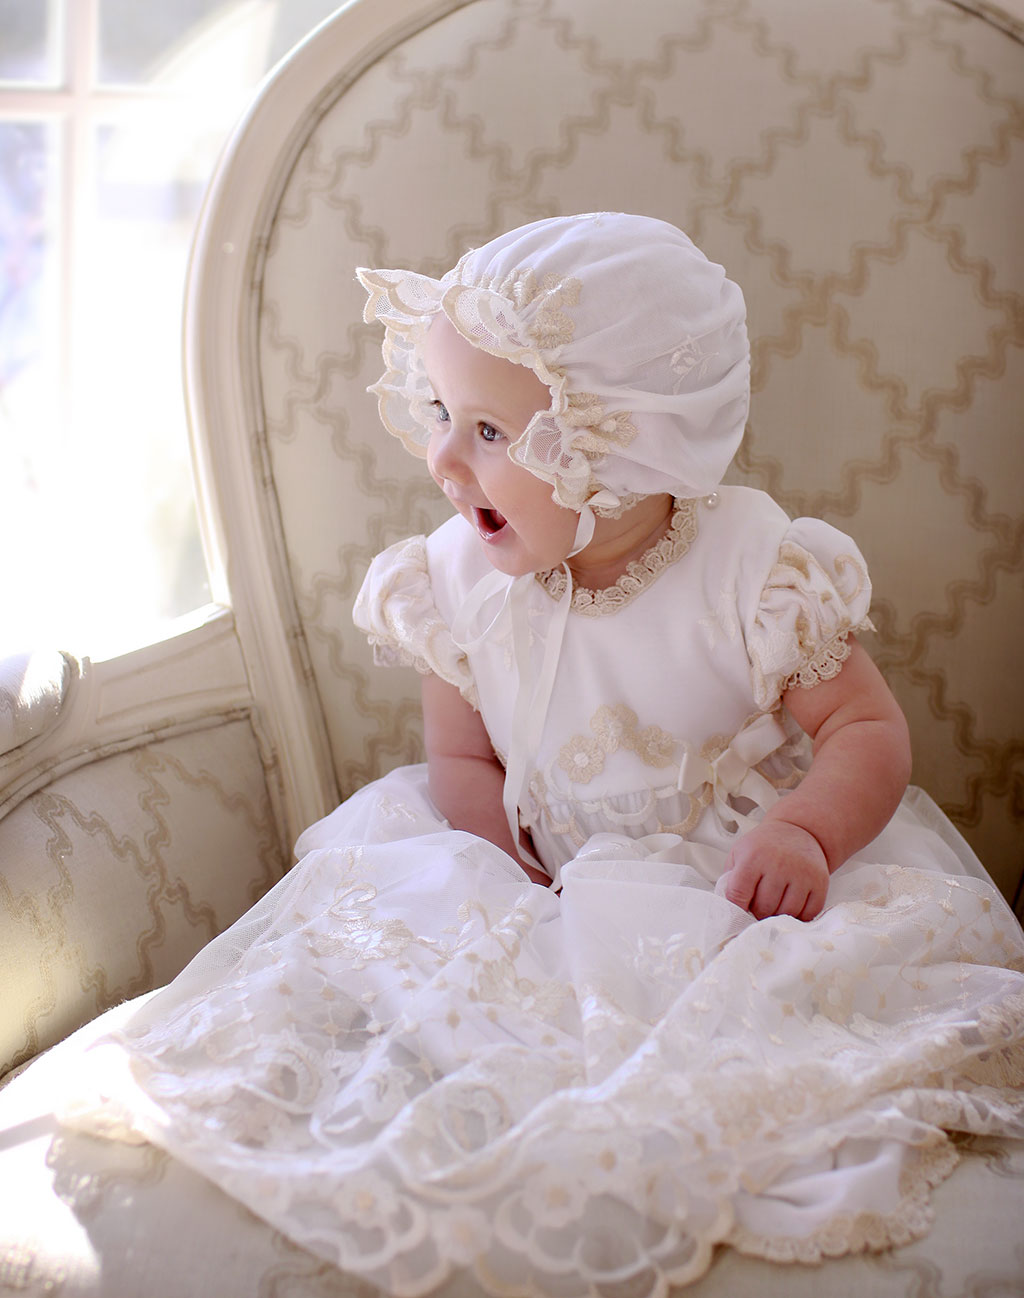 Emmaline's Christening Photos | Gwen Christening Gown & Bonnet